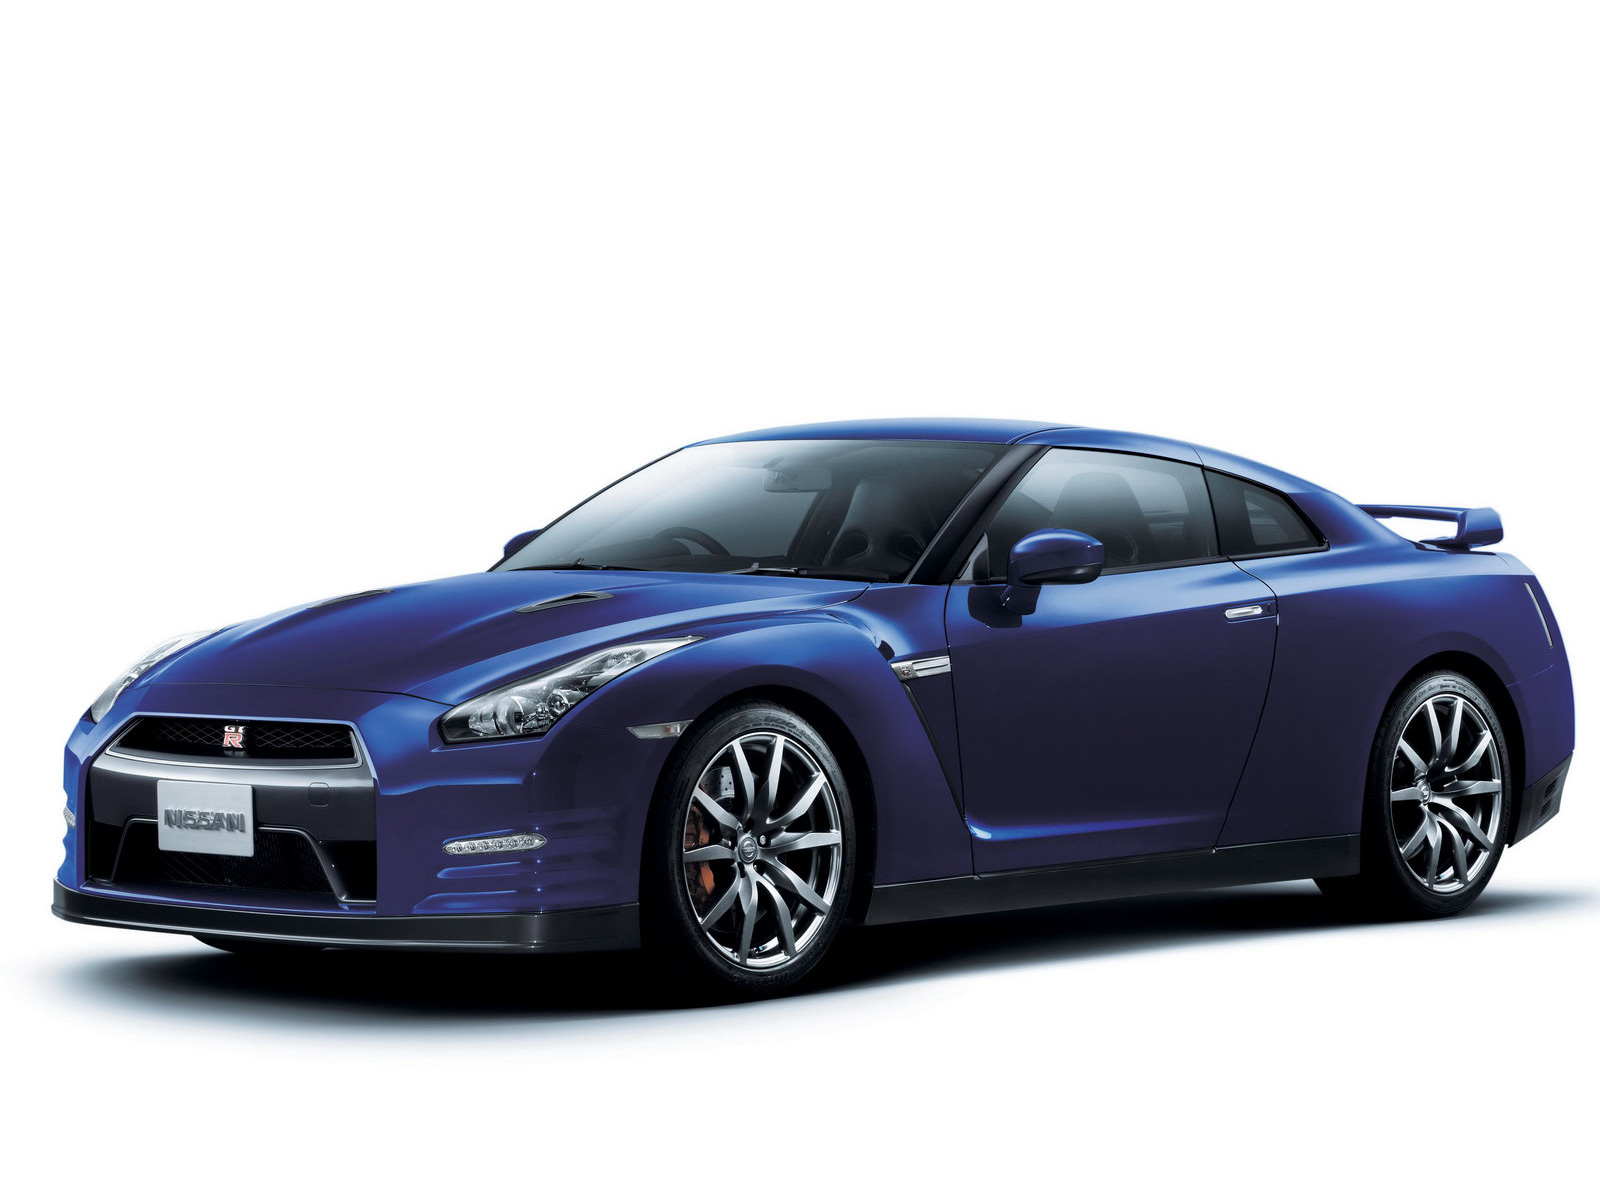 cars nissan r35 gt - photo #28